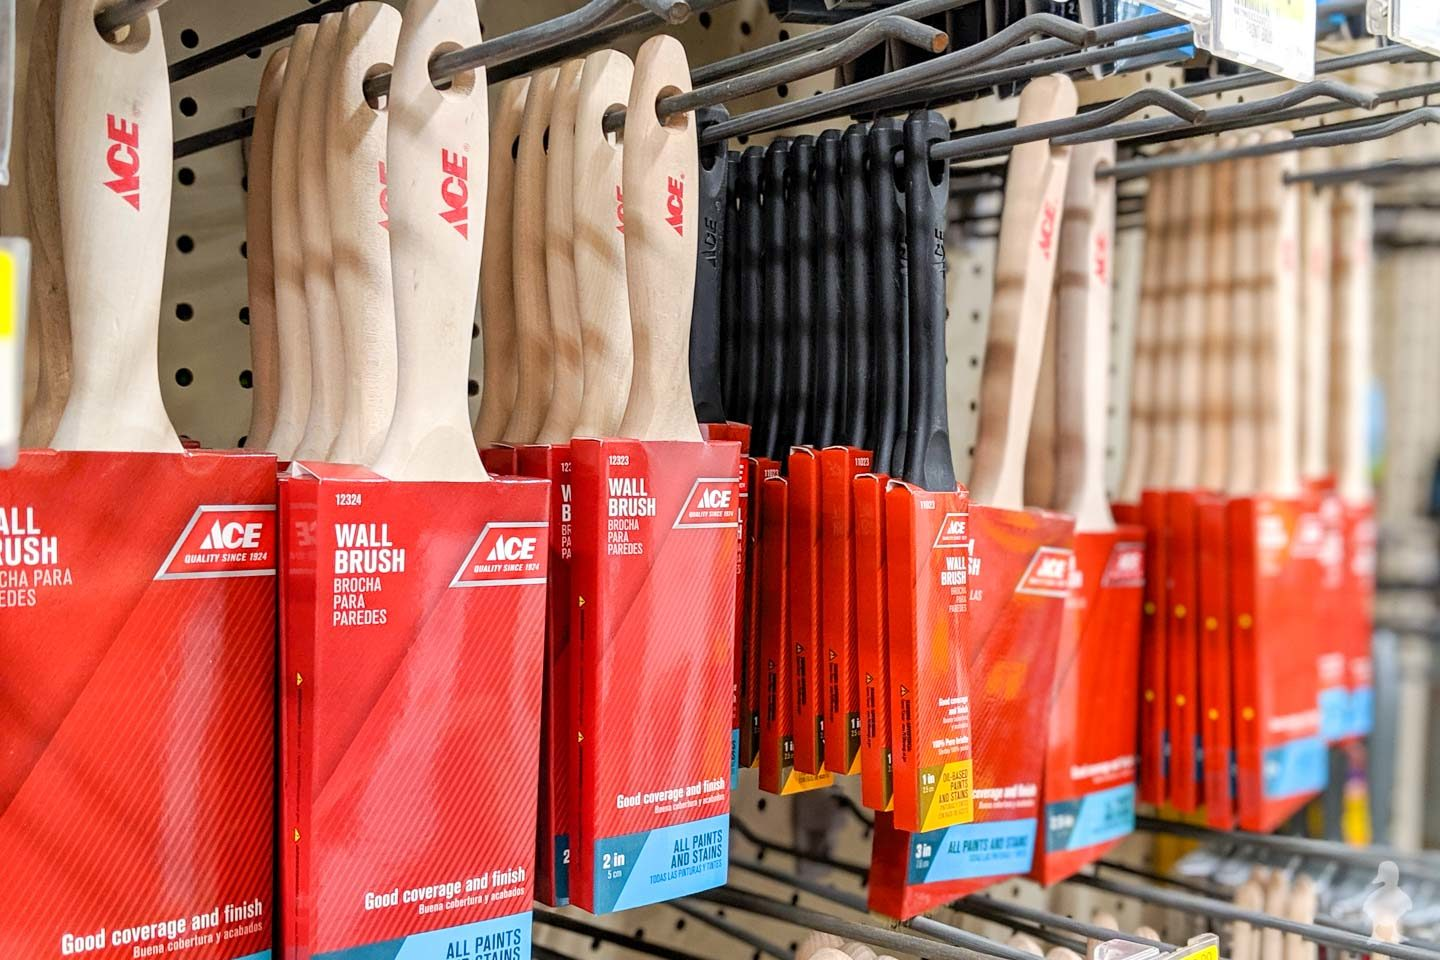 paintbrushes for sale at ace hardware